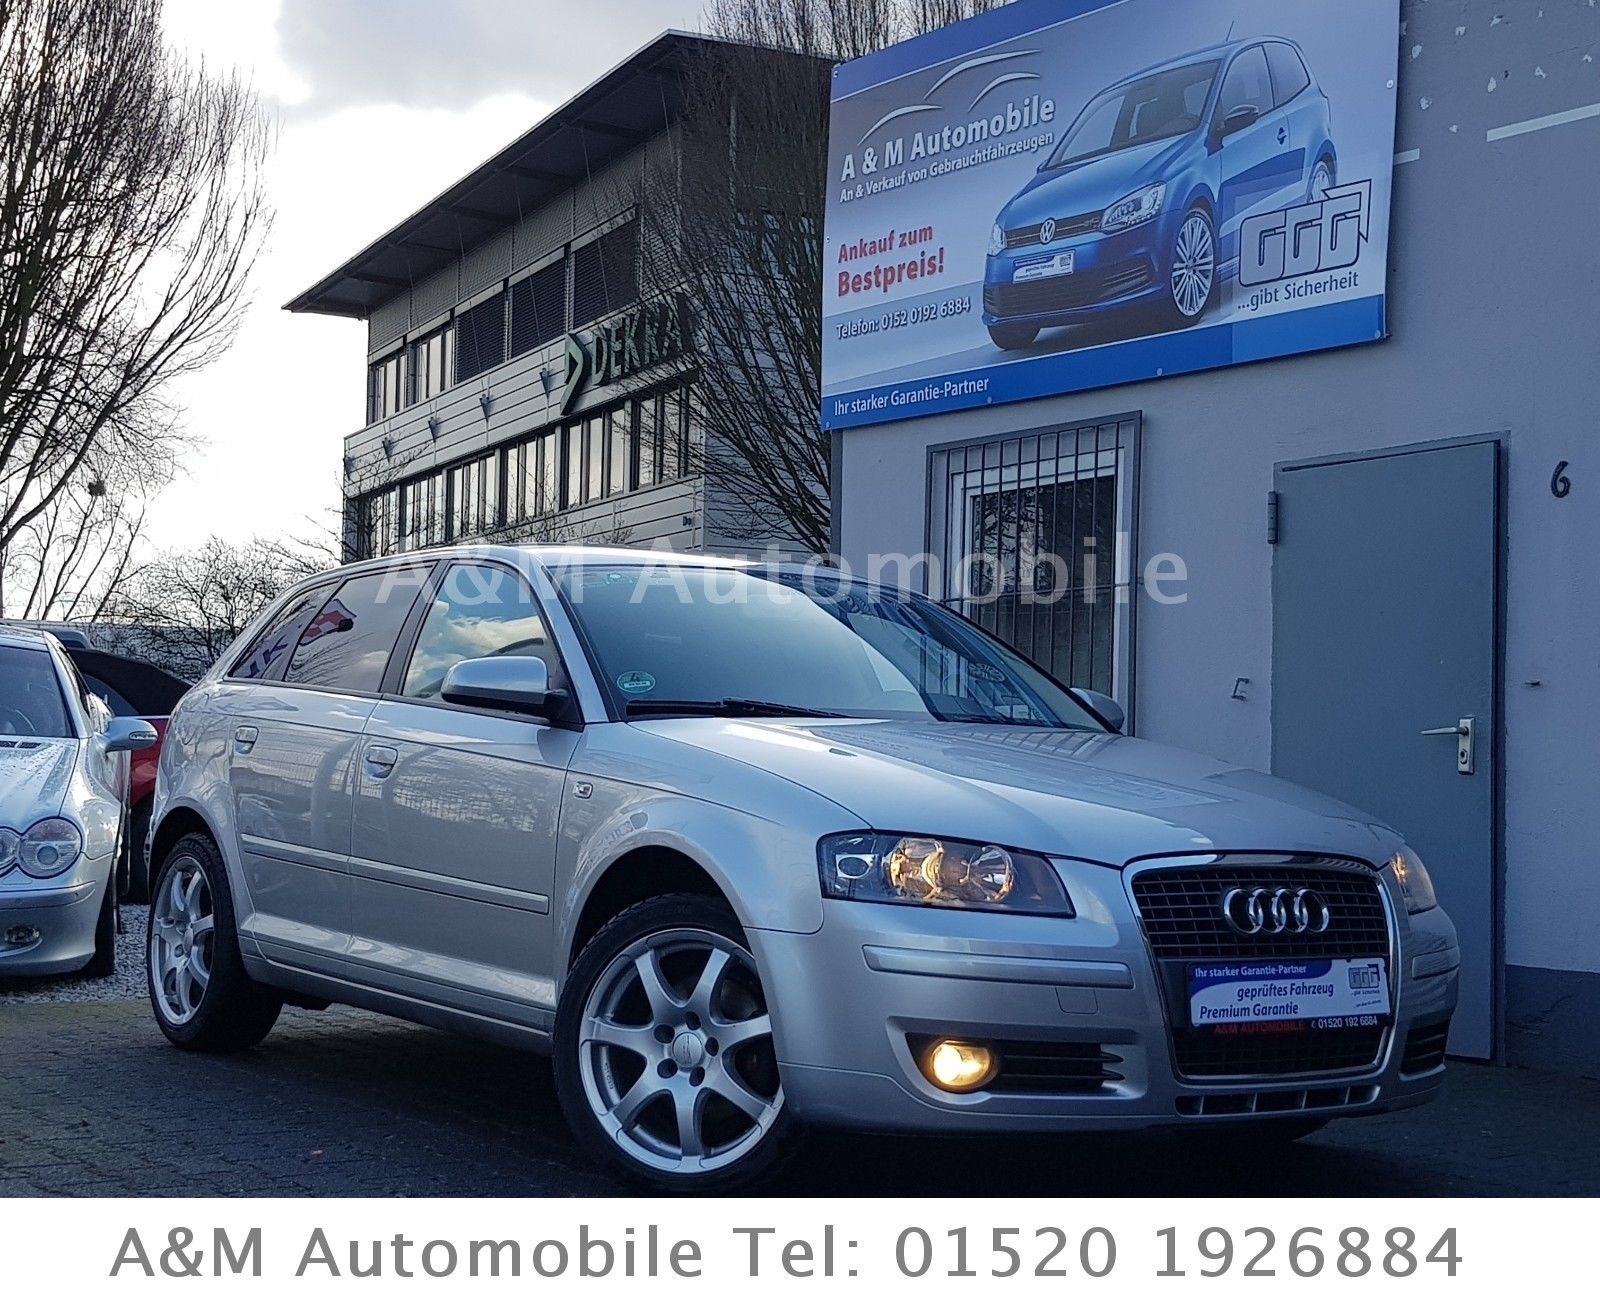 AUDI A3 Sportback 2.0 FSI *DSG* Attraction*SHZ*KLIMA*